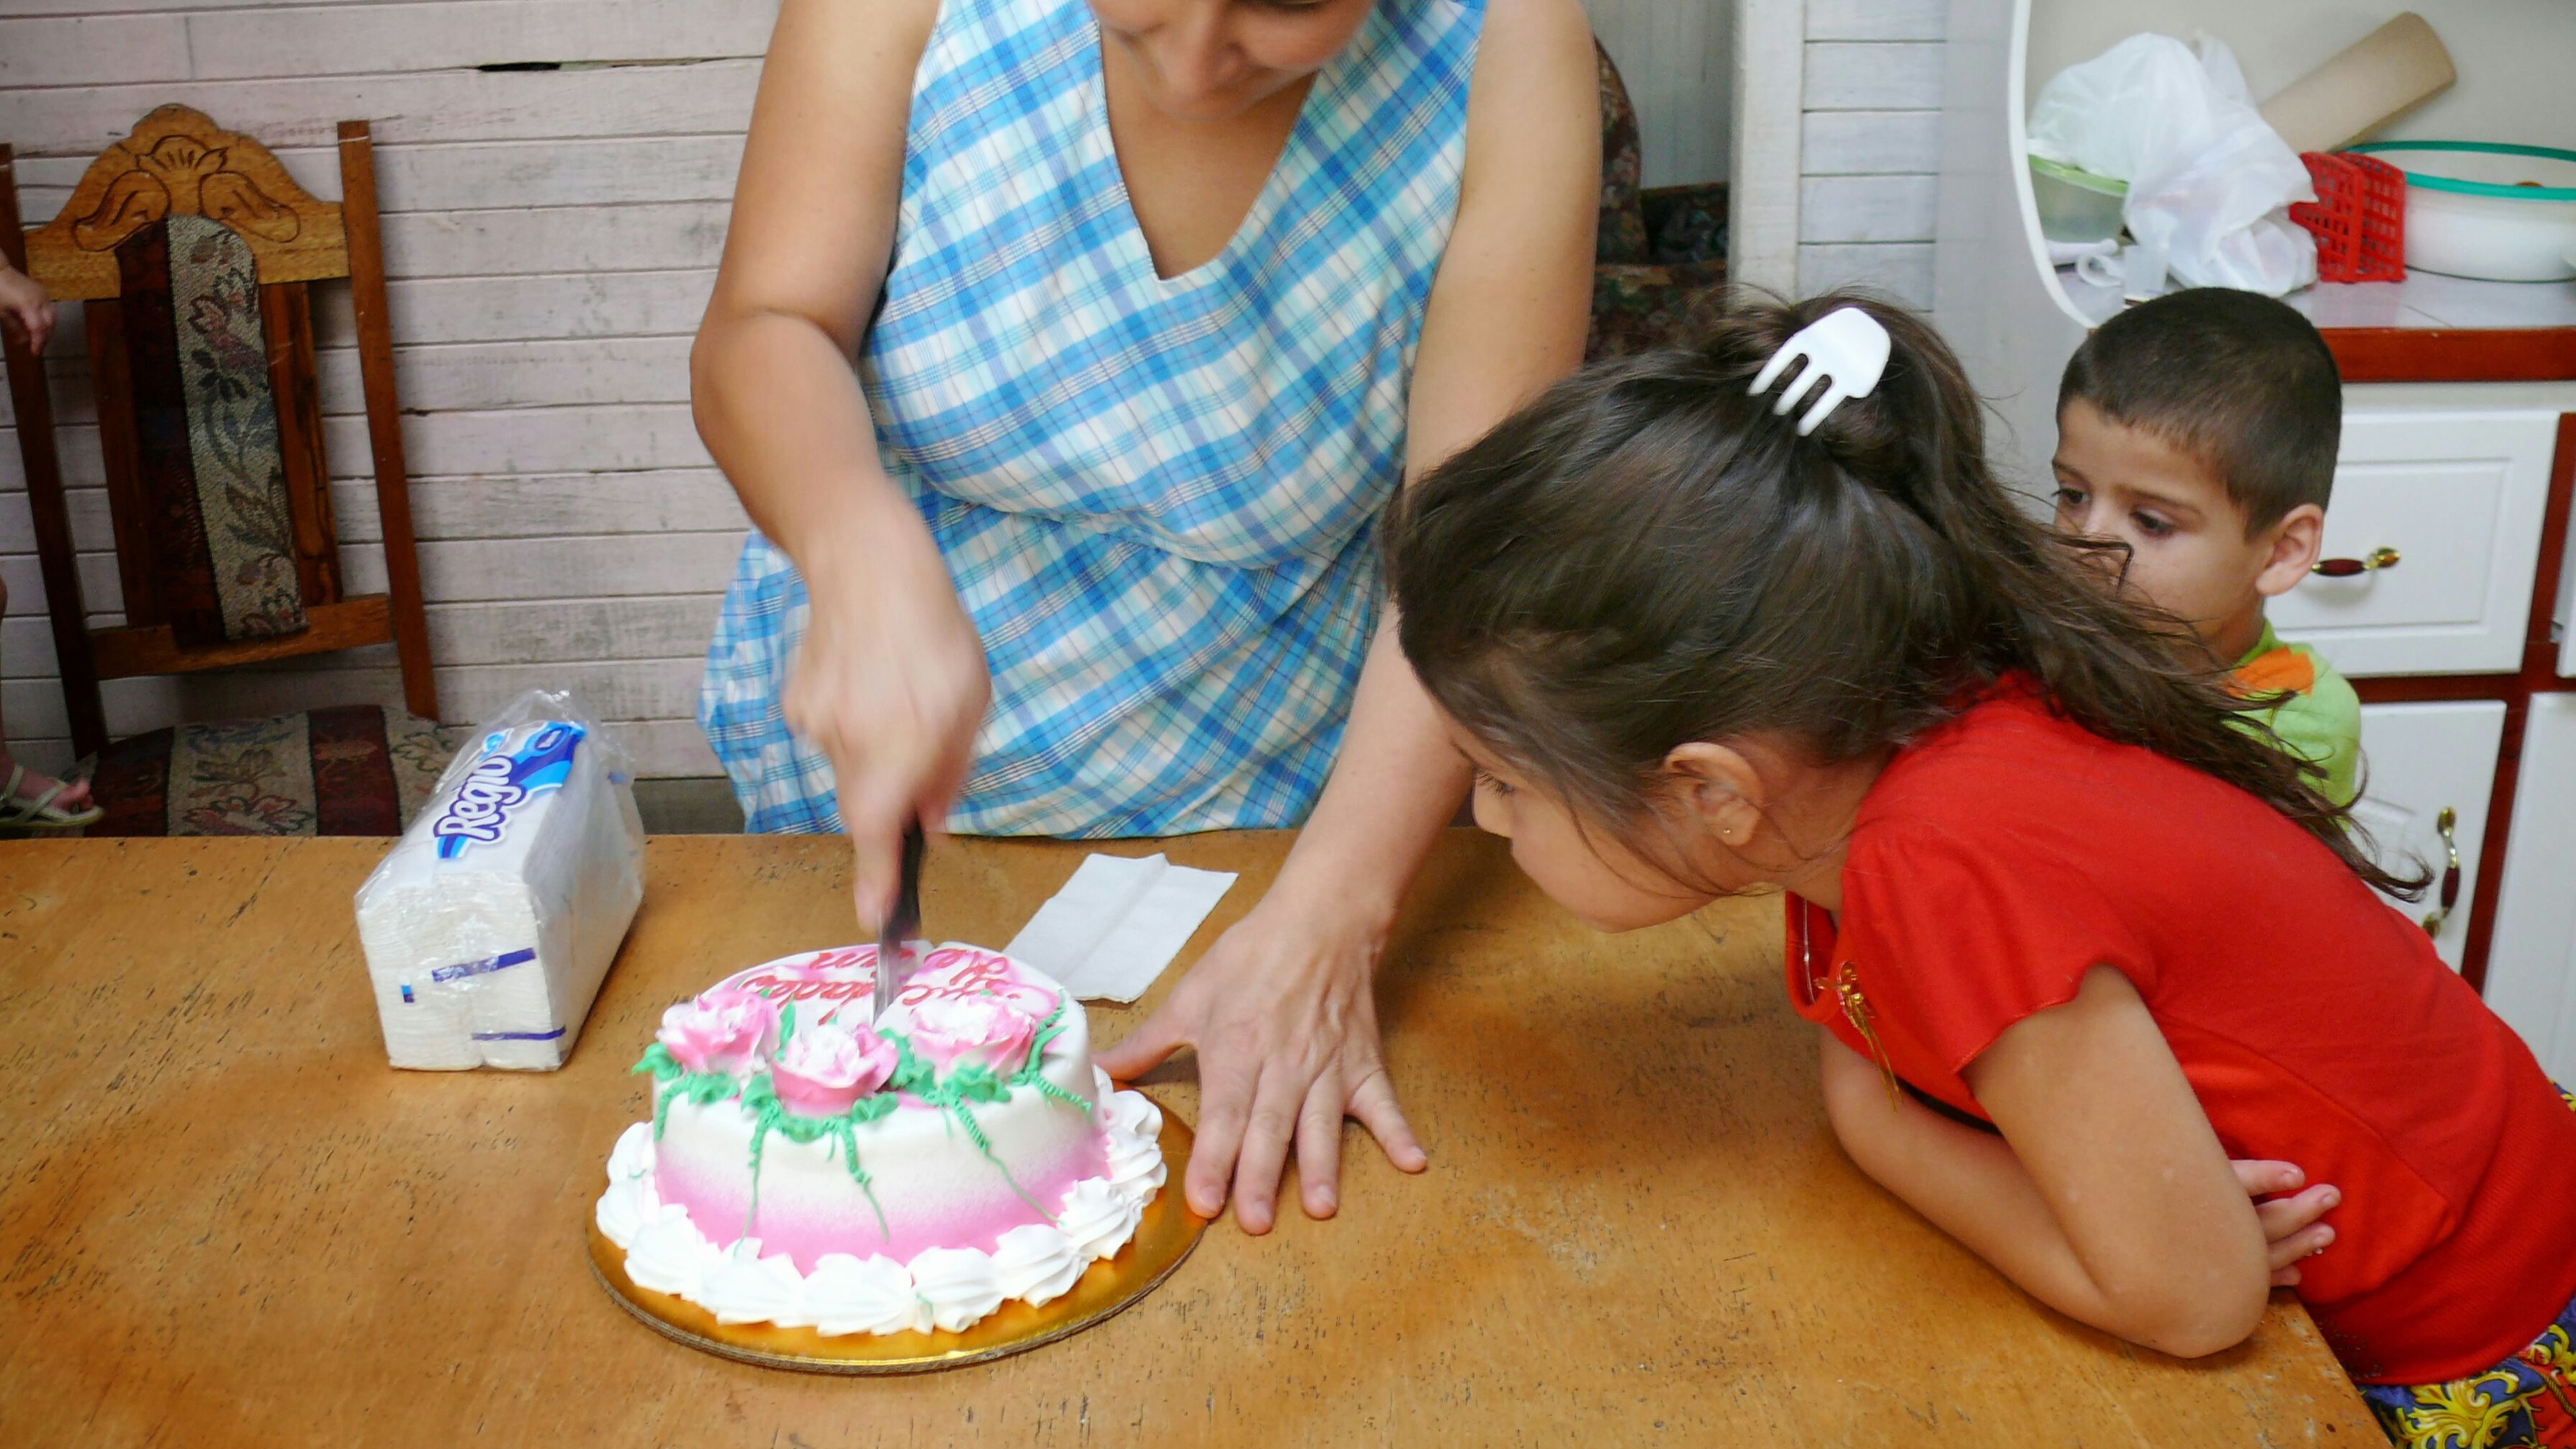 Child Neighbors Mother Birthday Cake Cake San Vito, Costa Rica Everyday Education Anticipation Kiids Cildren